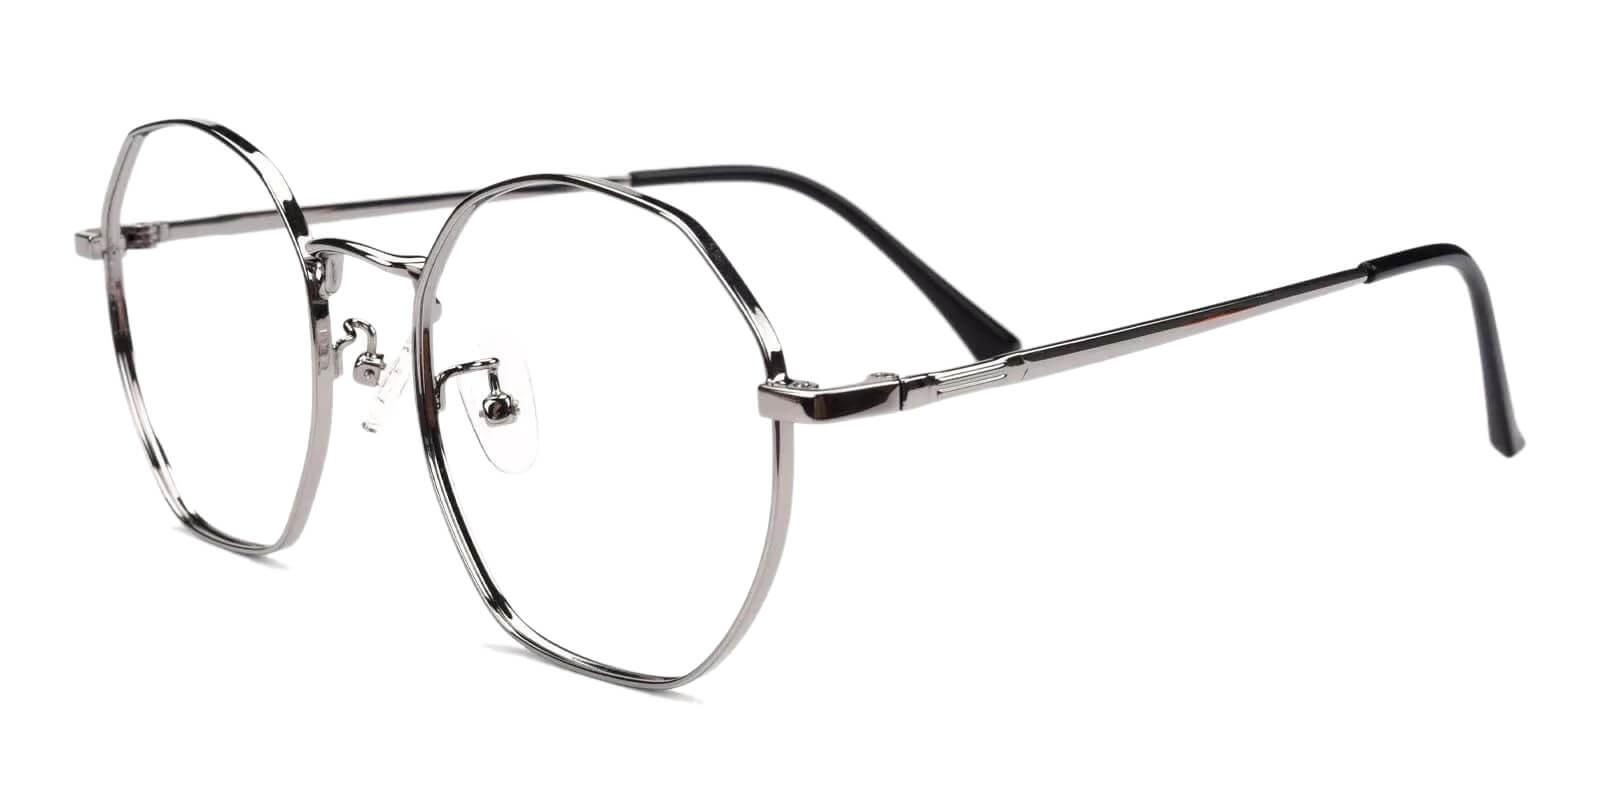 Jadeite Silver Metal Eyeglasses , Fashion , NosePads Frames from ABBE Glasses